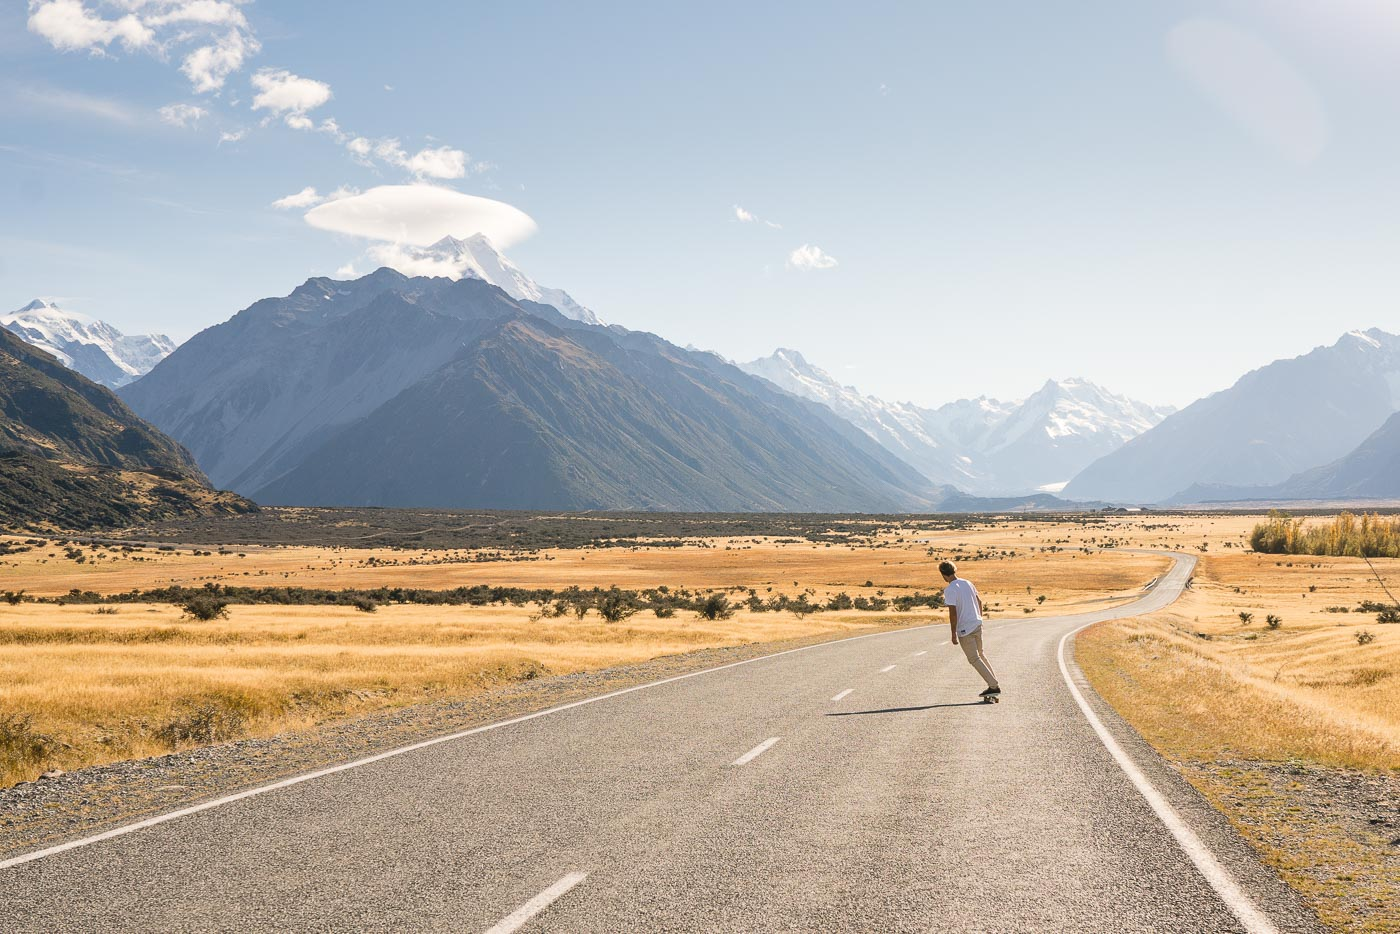 Stefan Haworth skating down the road to Mount Cook National Park.